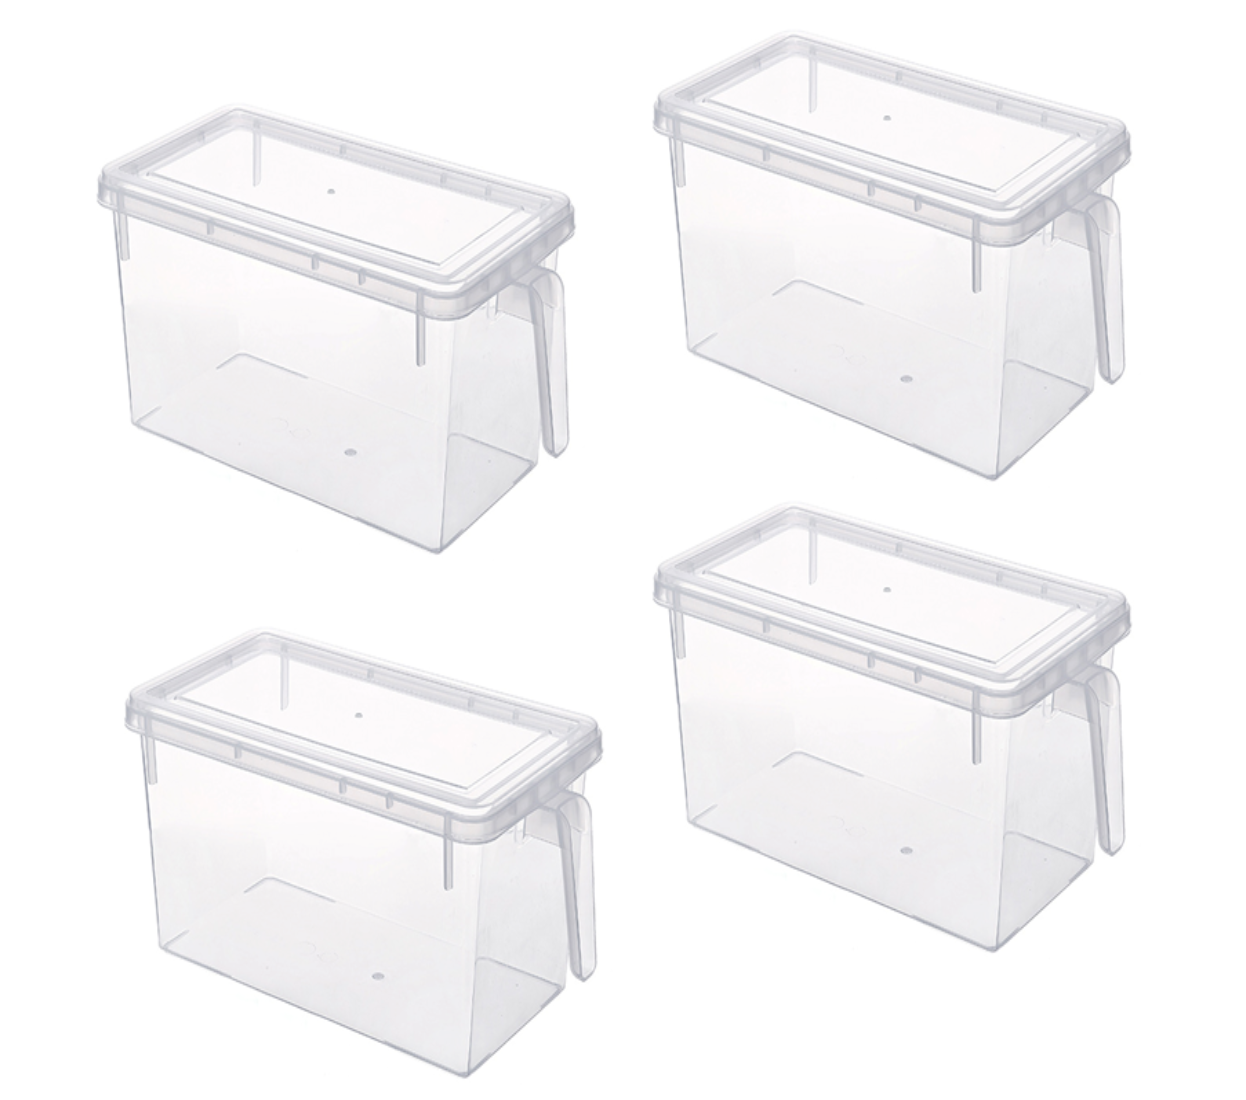 Maisonware Transparent PP Storage Box Set of 4